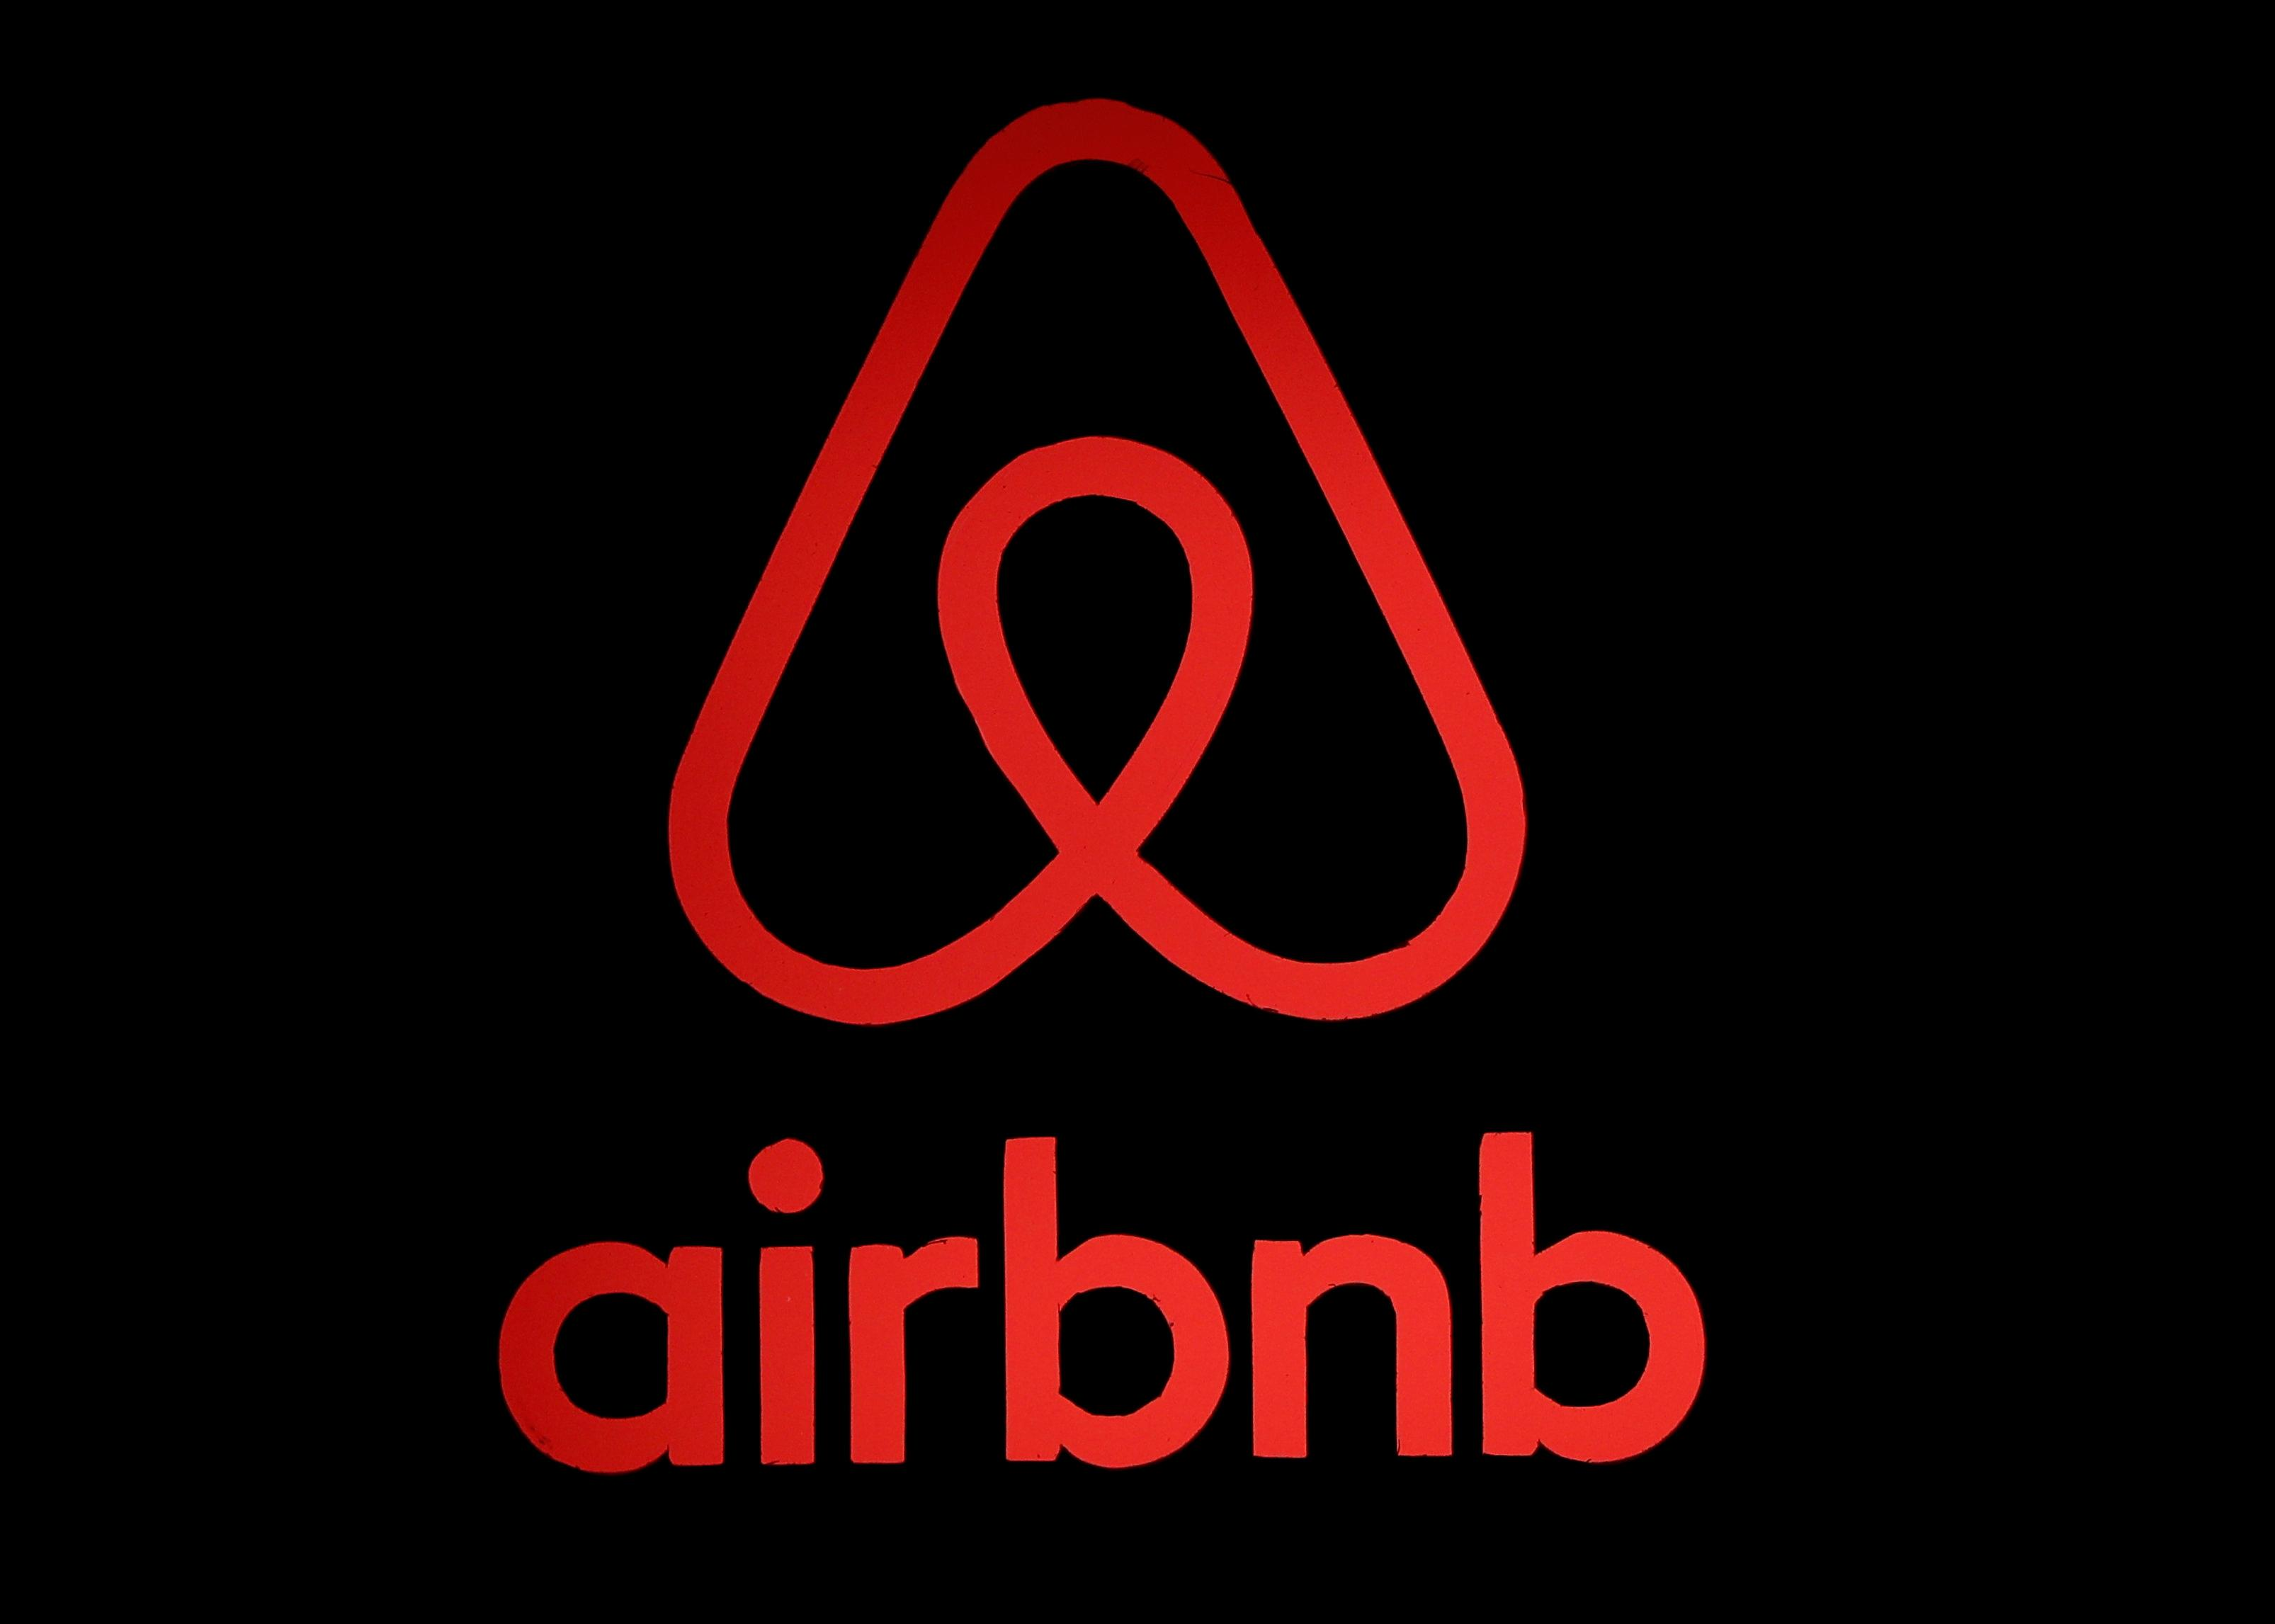 The logo of Airbnb is displayed at an Airbnb event in Tokyo, Japan, June 14, 2018. Issei Kato